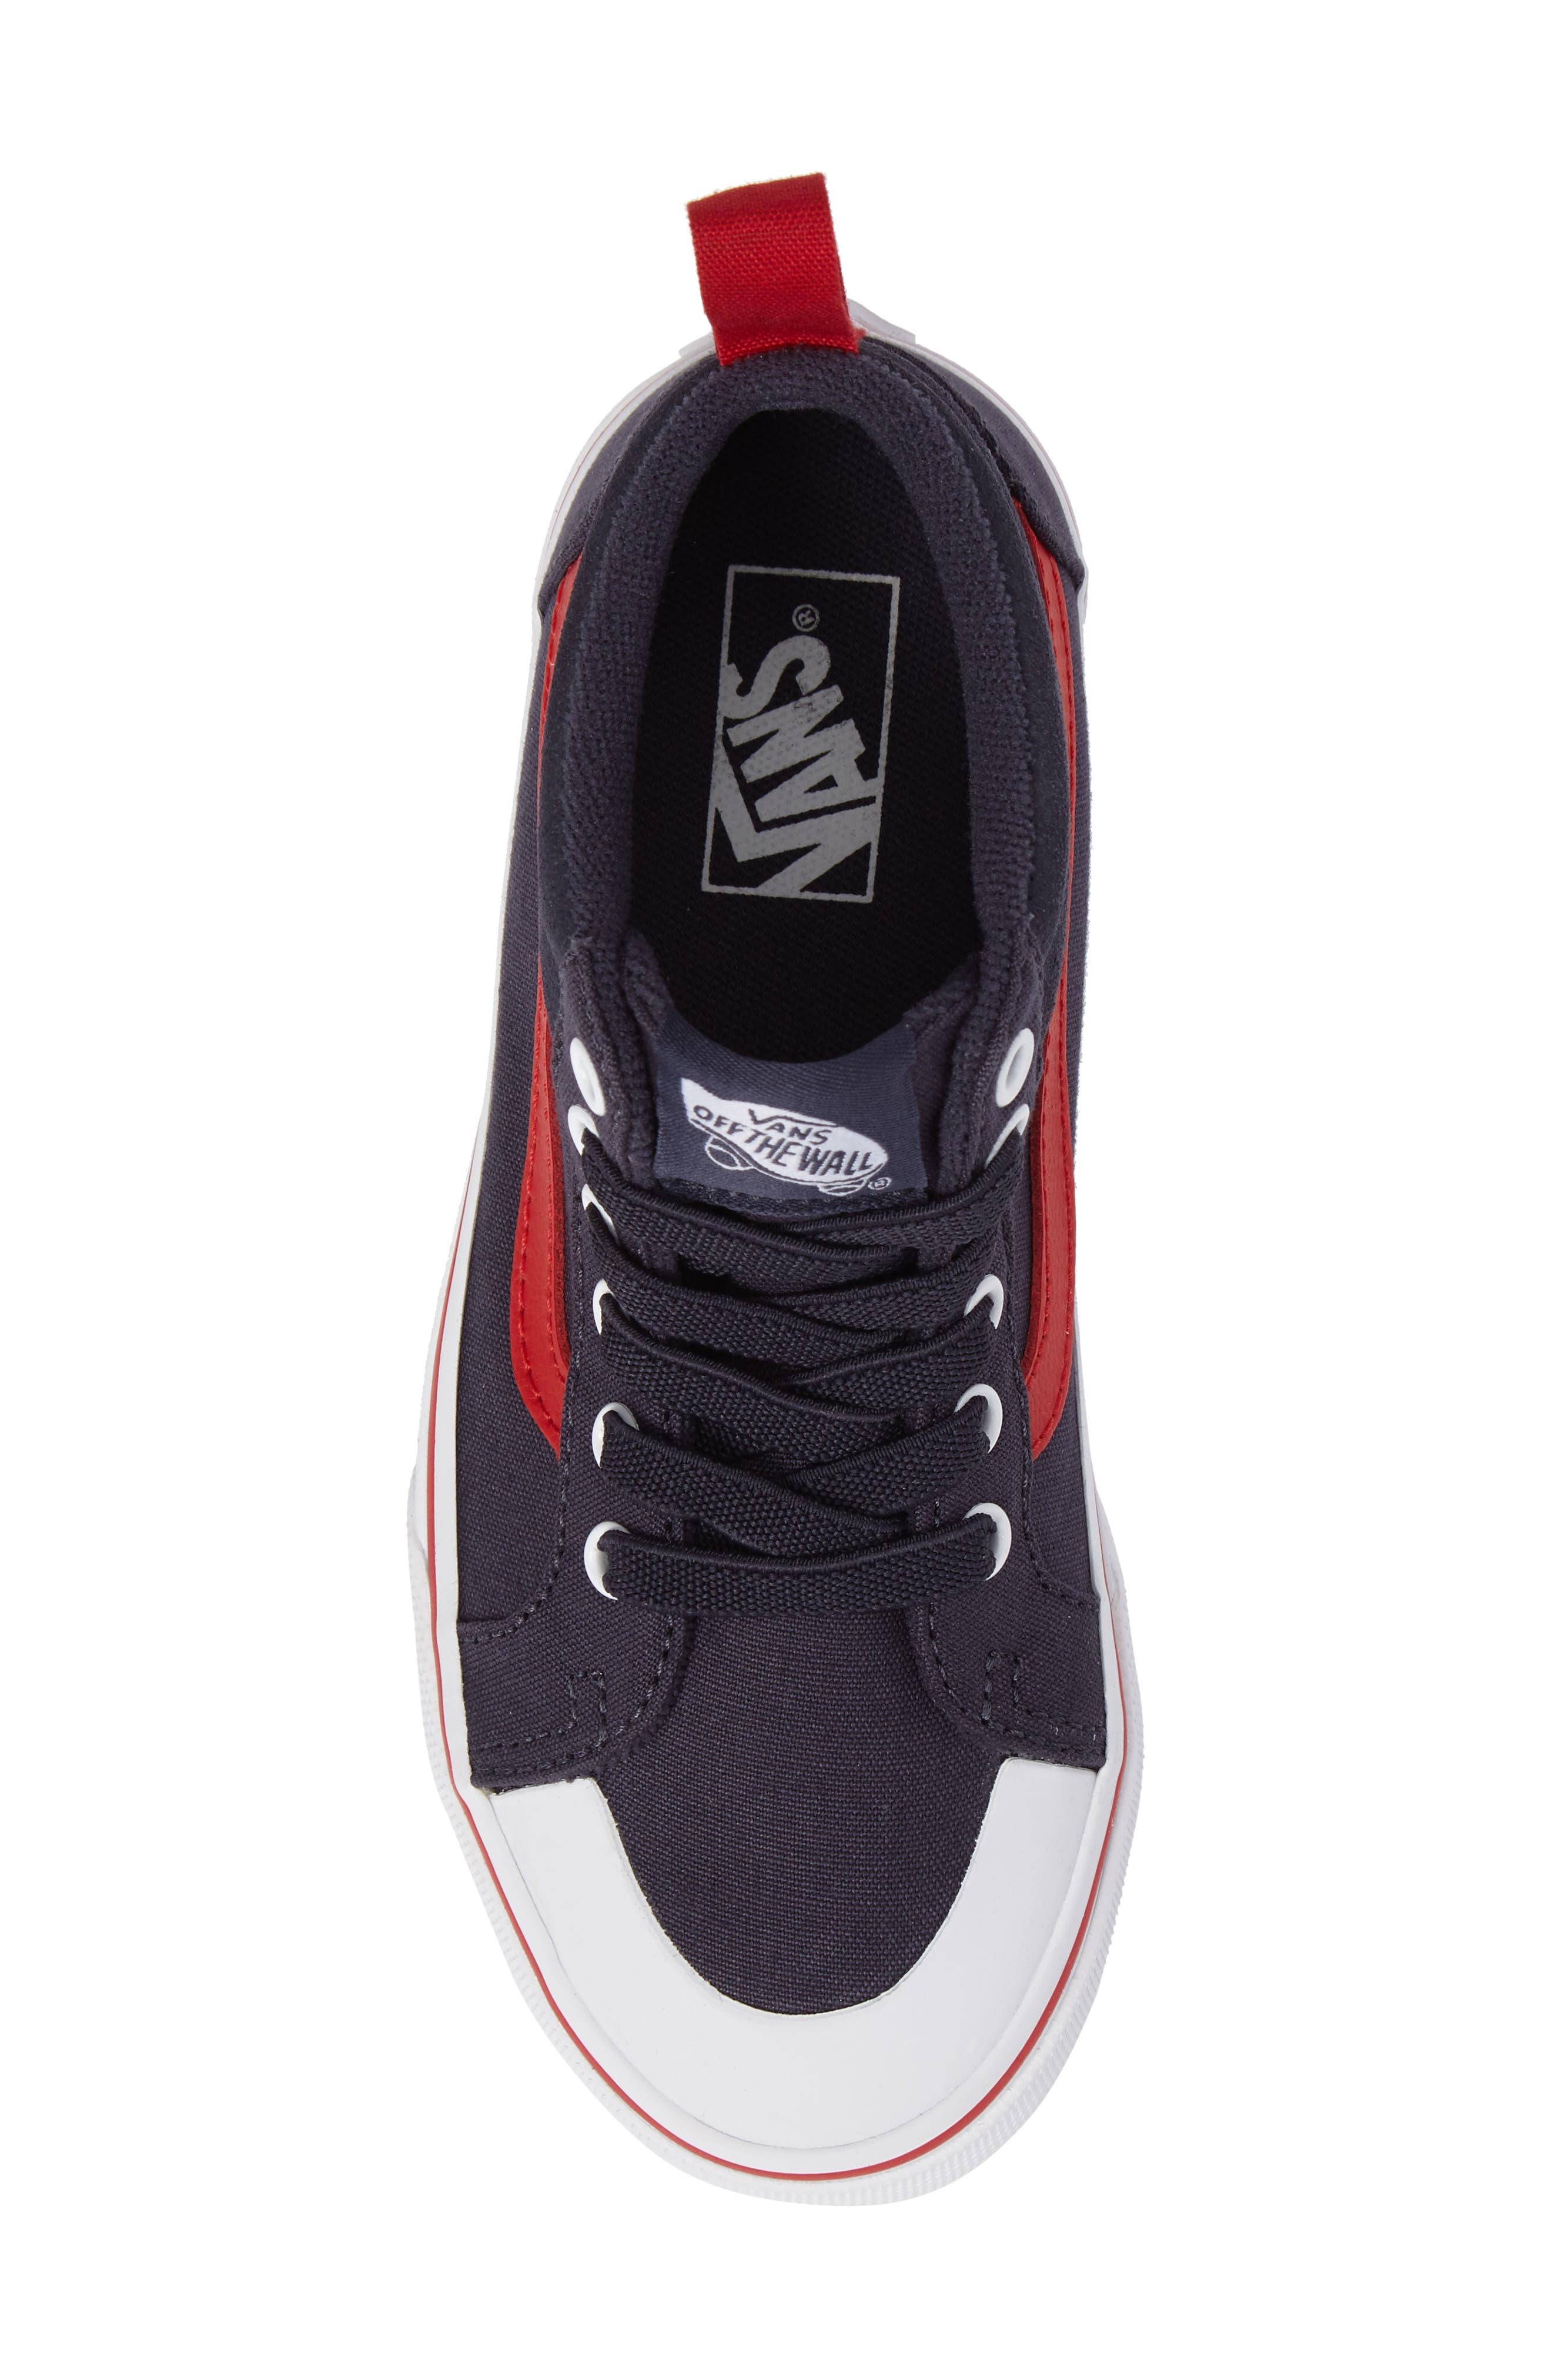 Racer Mid Elastic Lace Sneaker,                             Alternate thumbnail 35, color,